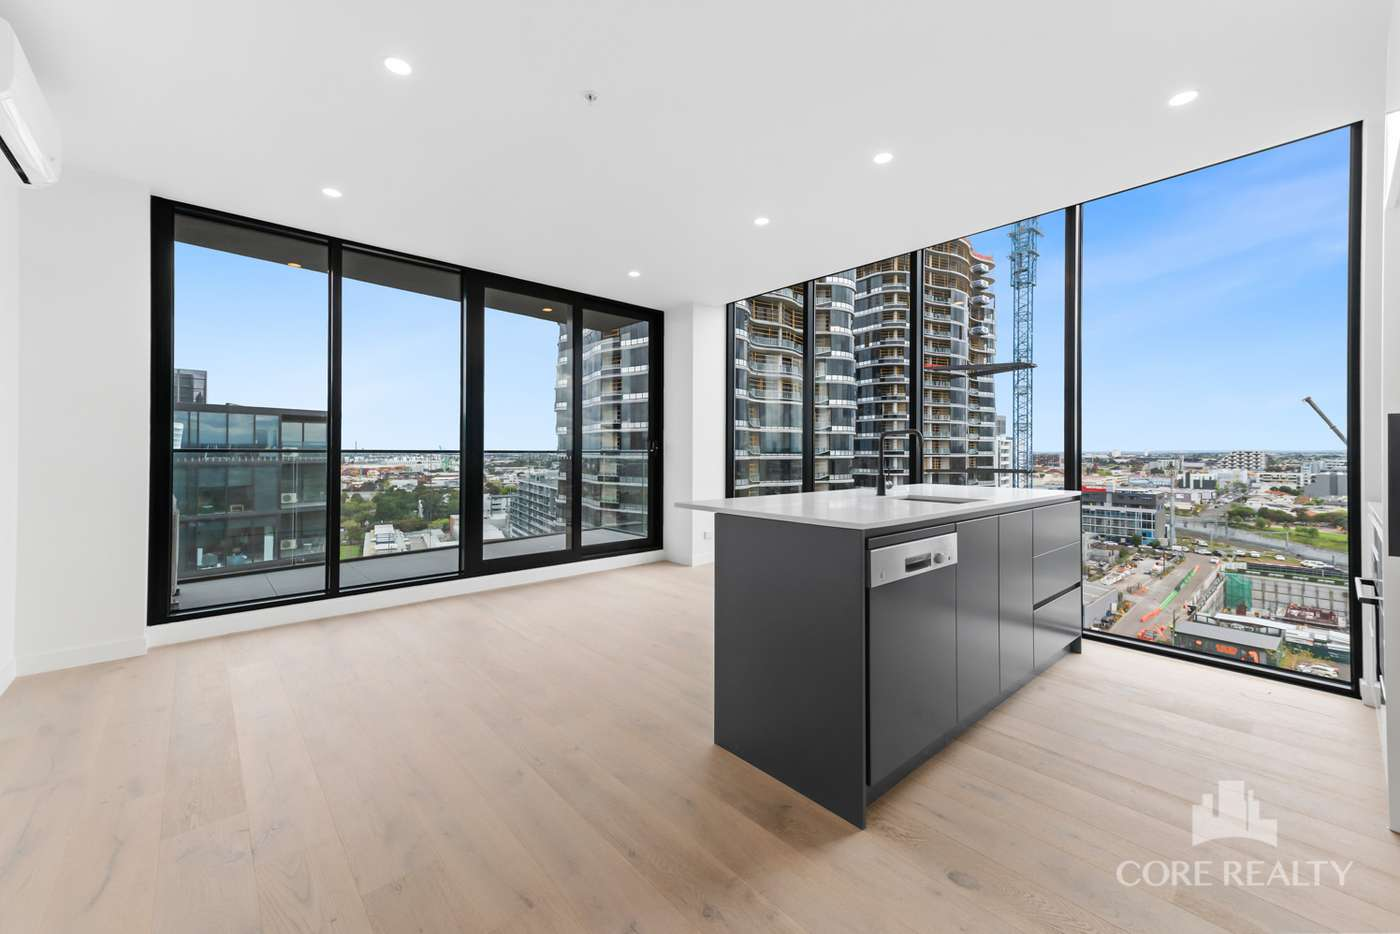 Main view of Homely apartment listing, 1502/4 Joseph Road, Footscray VIC 3011